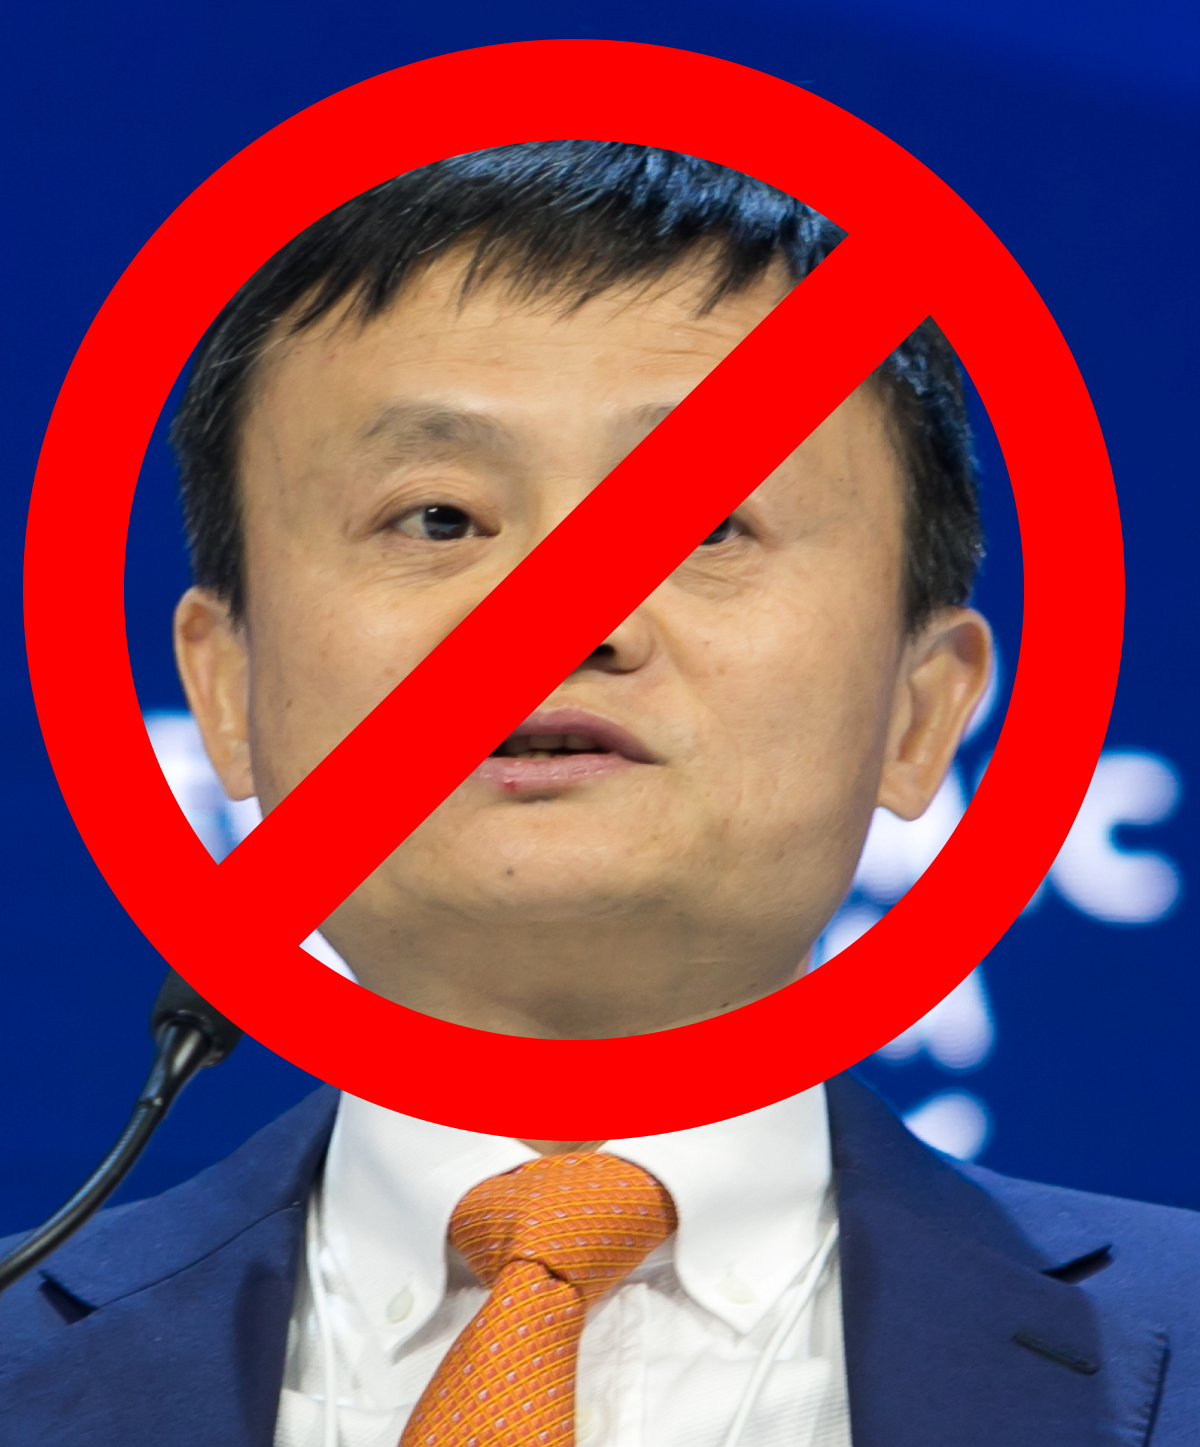 Jack Ma has been cancelled.